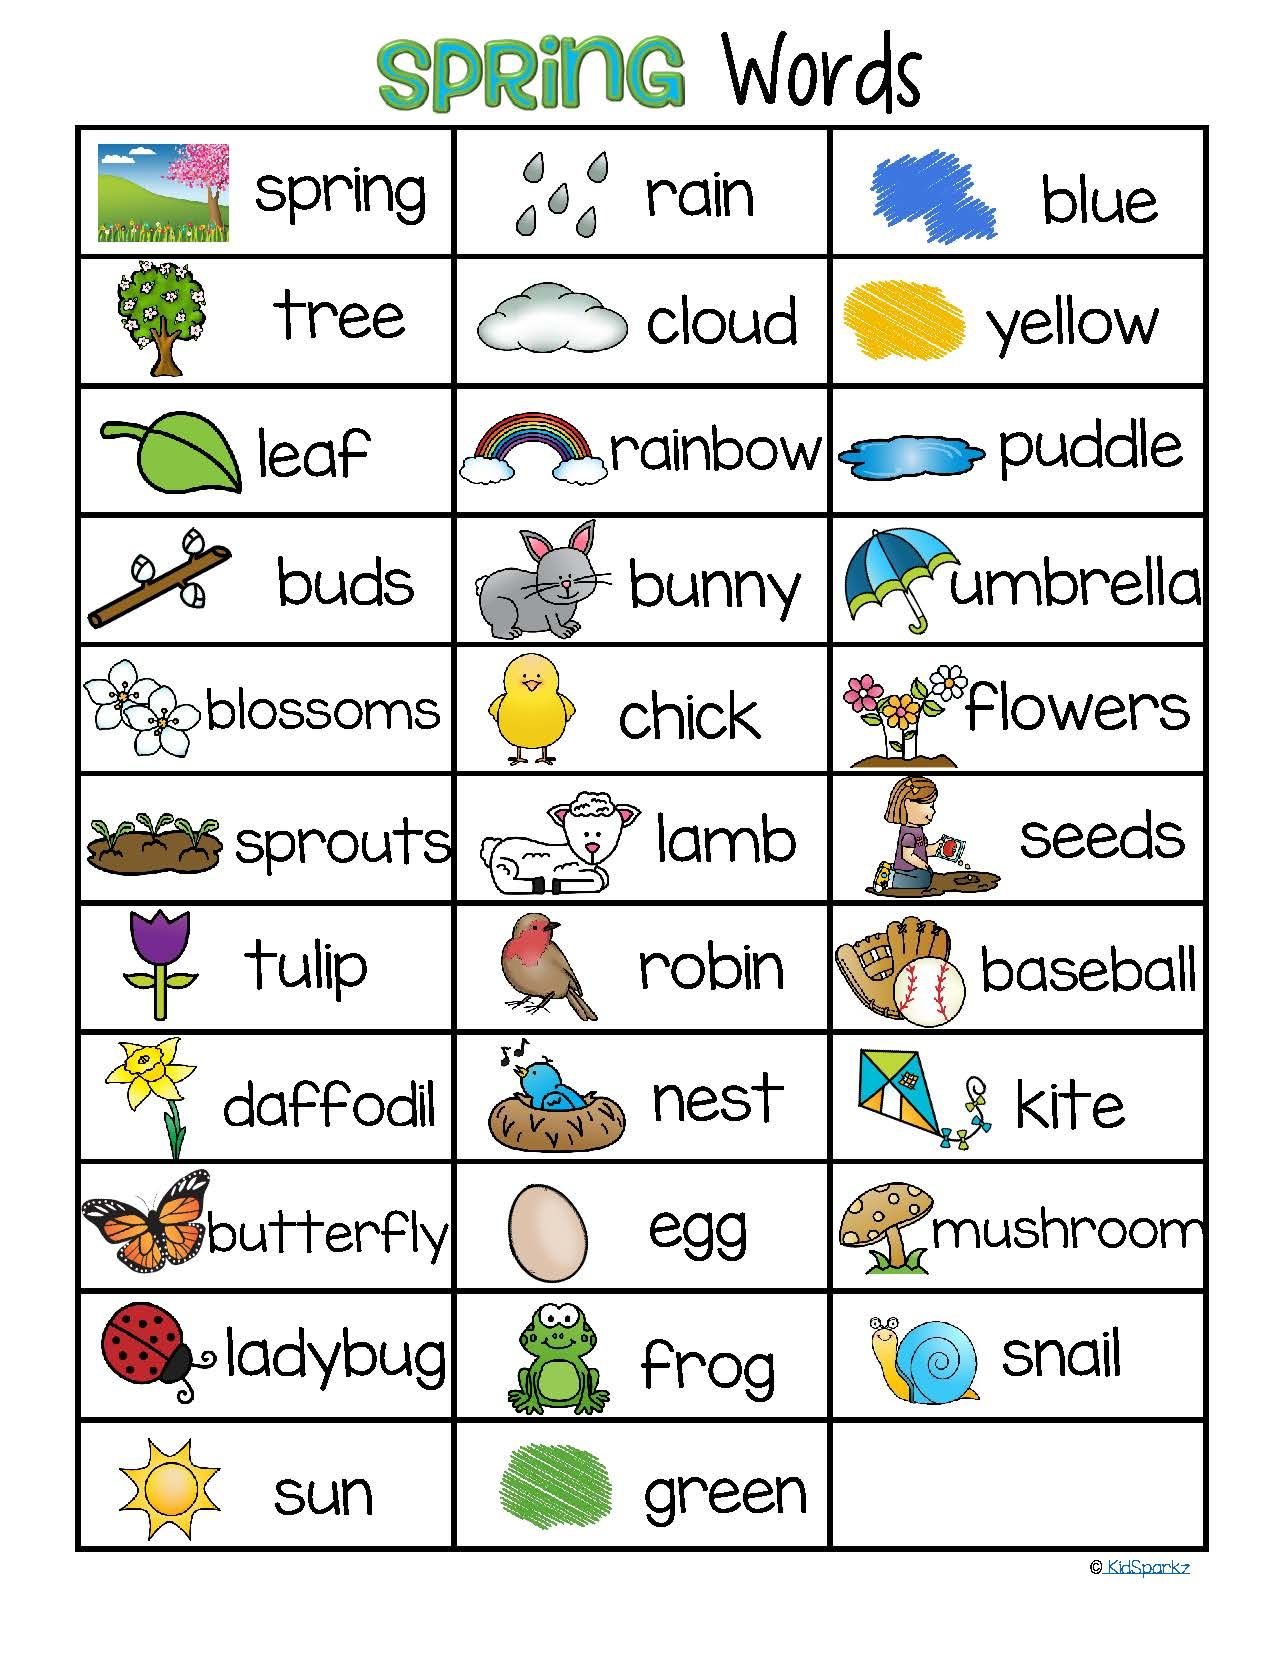 SPRING Vocabulary List 32 Words and Pictures FREE | Material ...